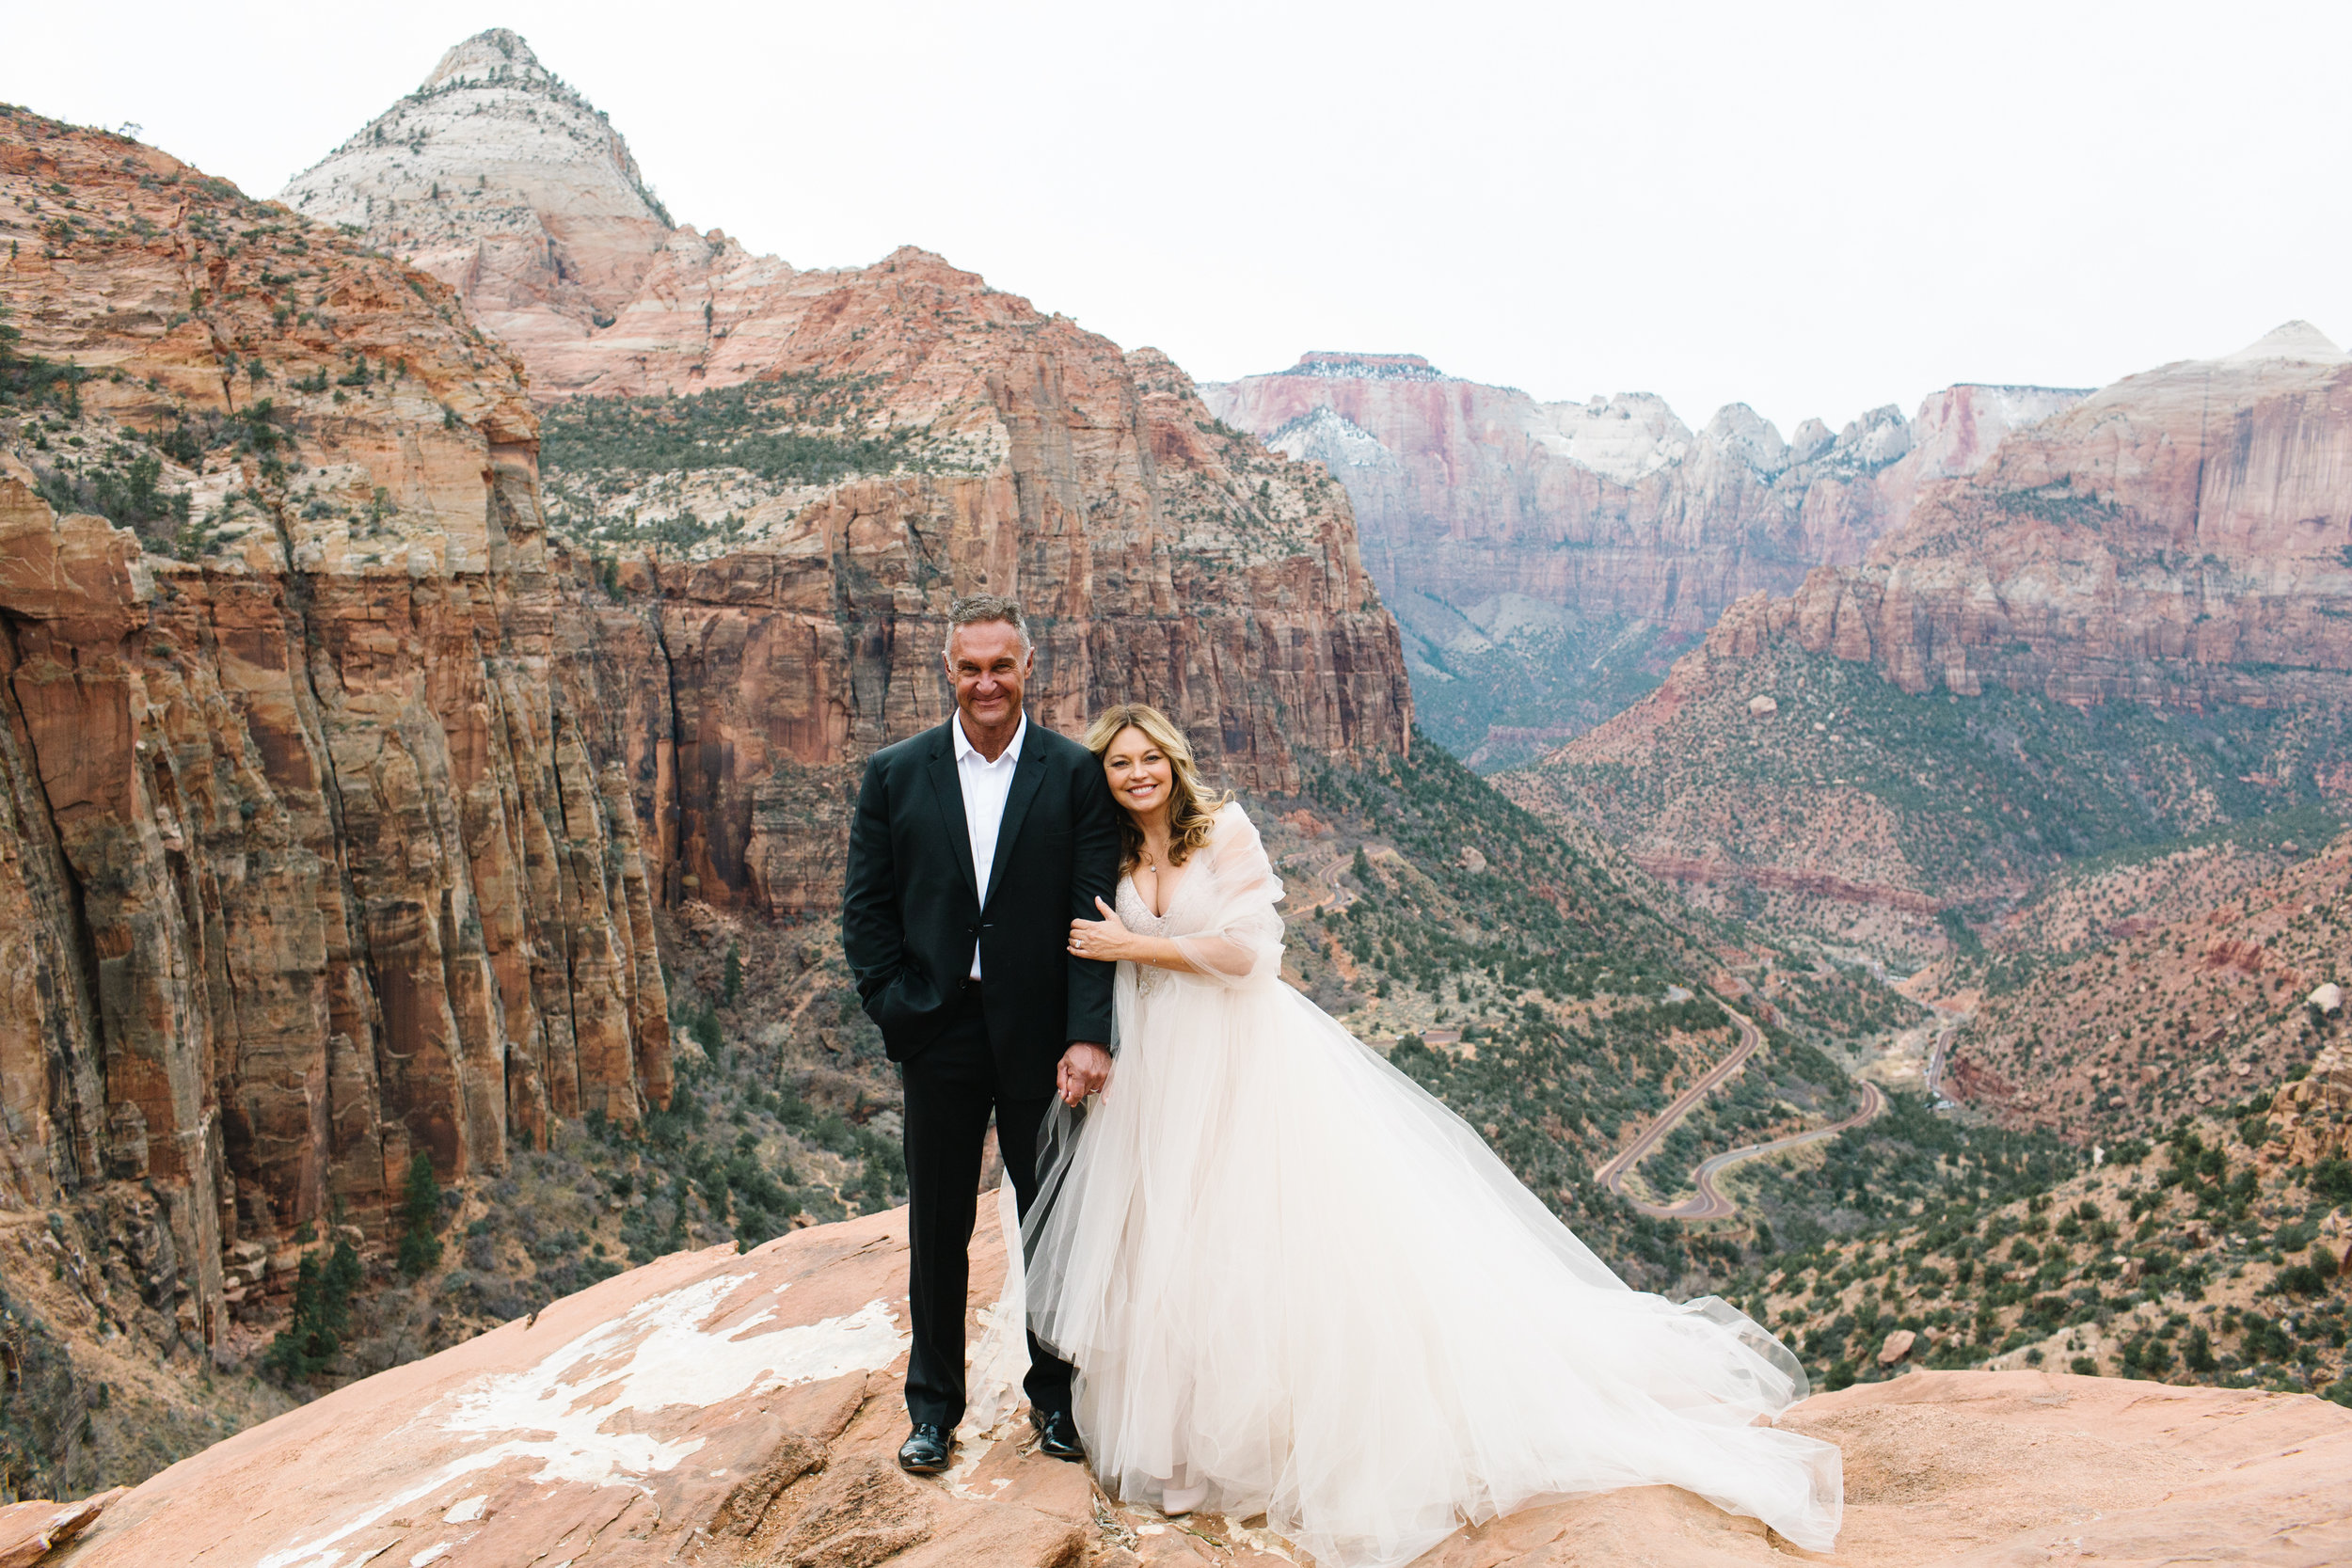 Zion Wedding-21.jpg